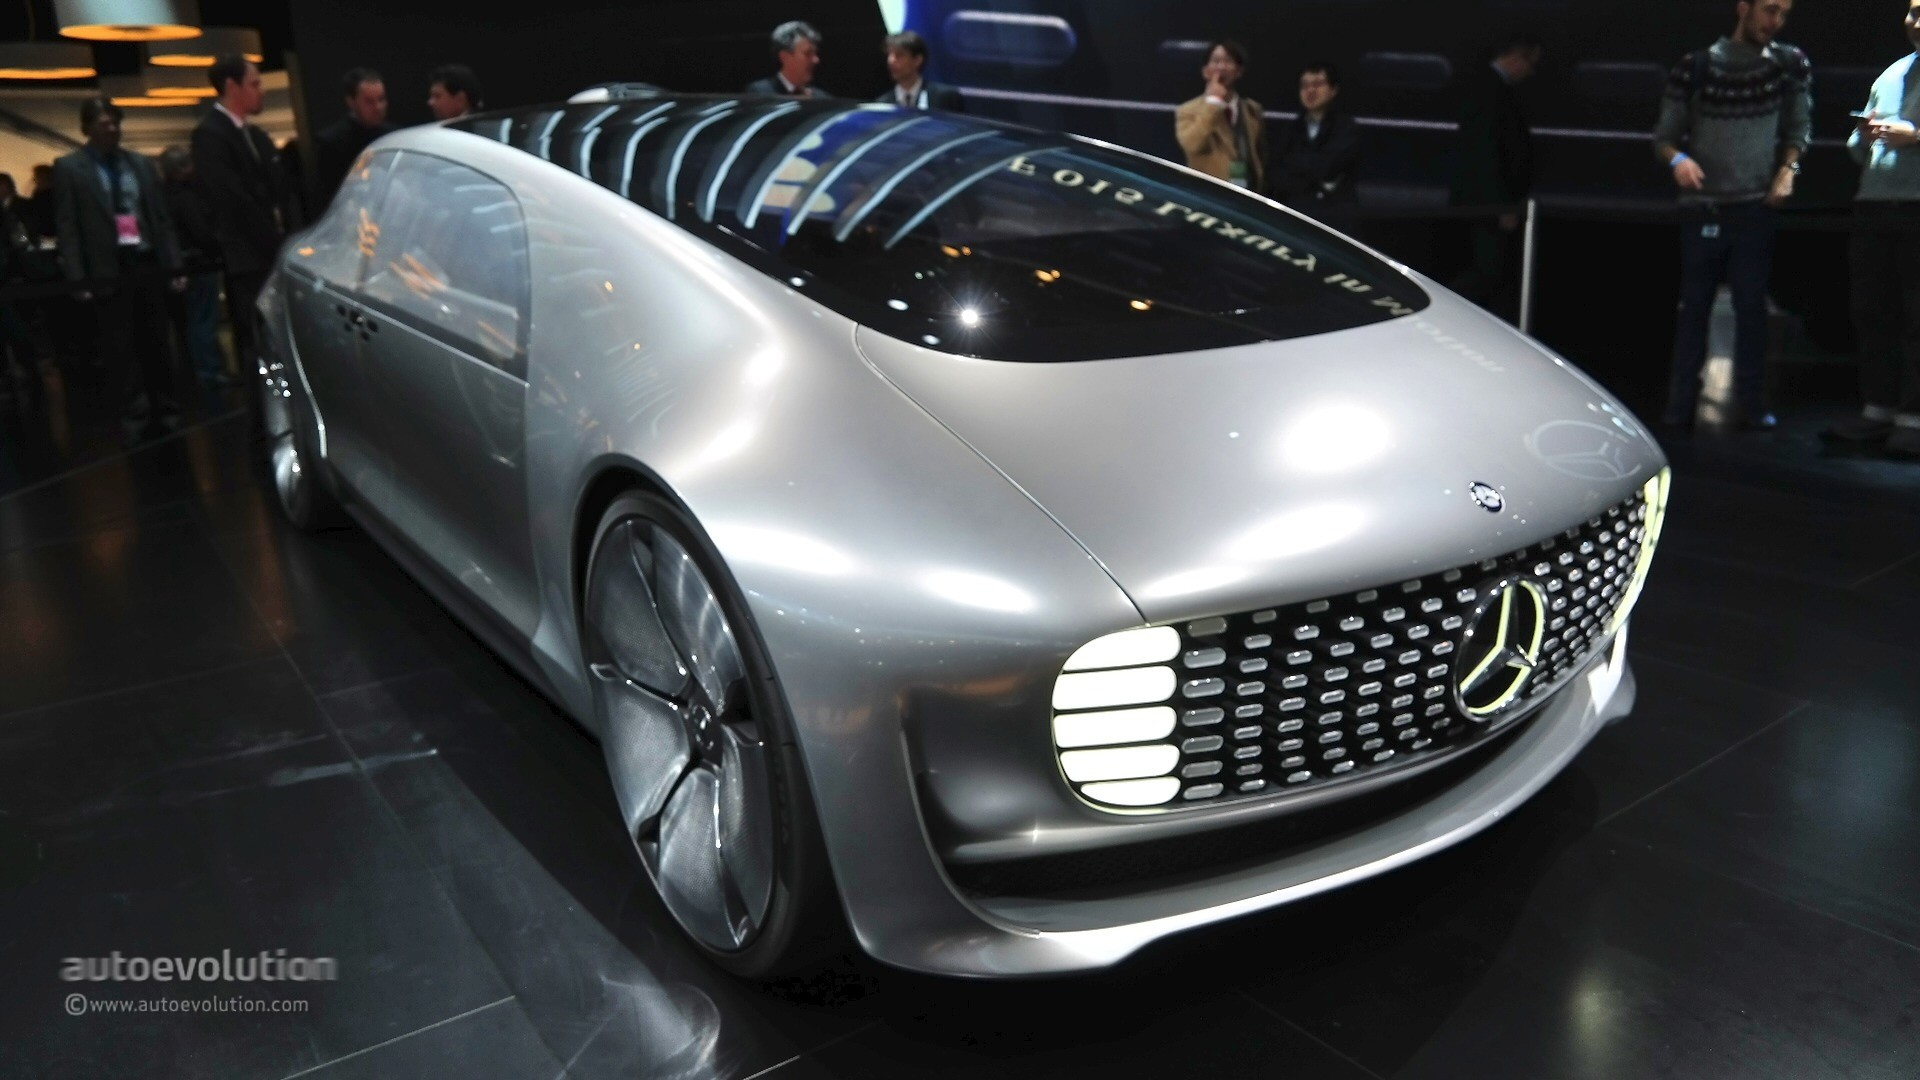 Mercedes Benz F 015 Concept Previews The Future At 2015